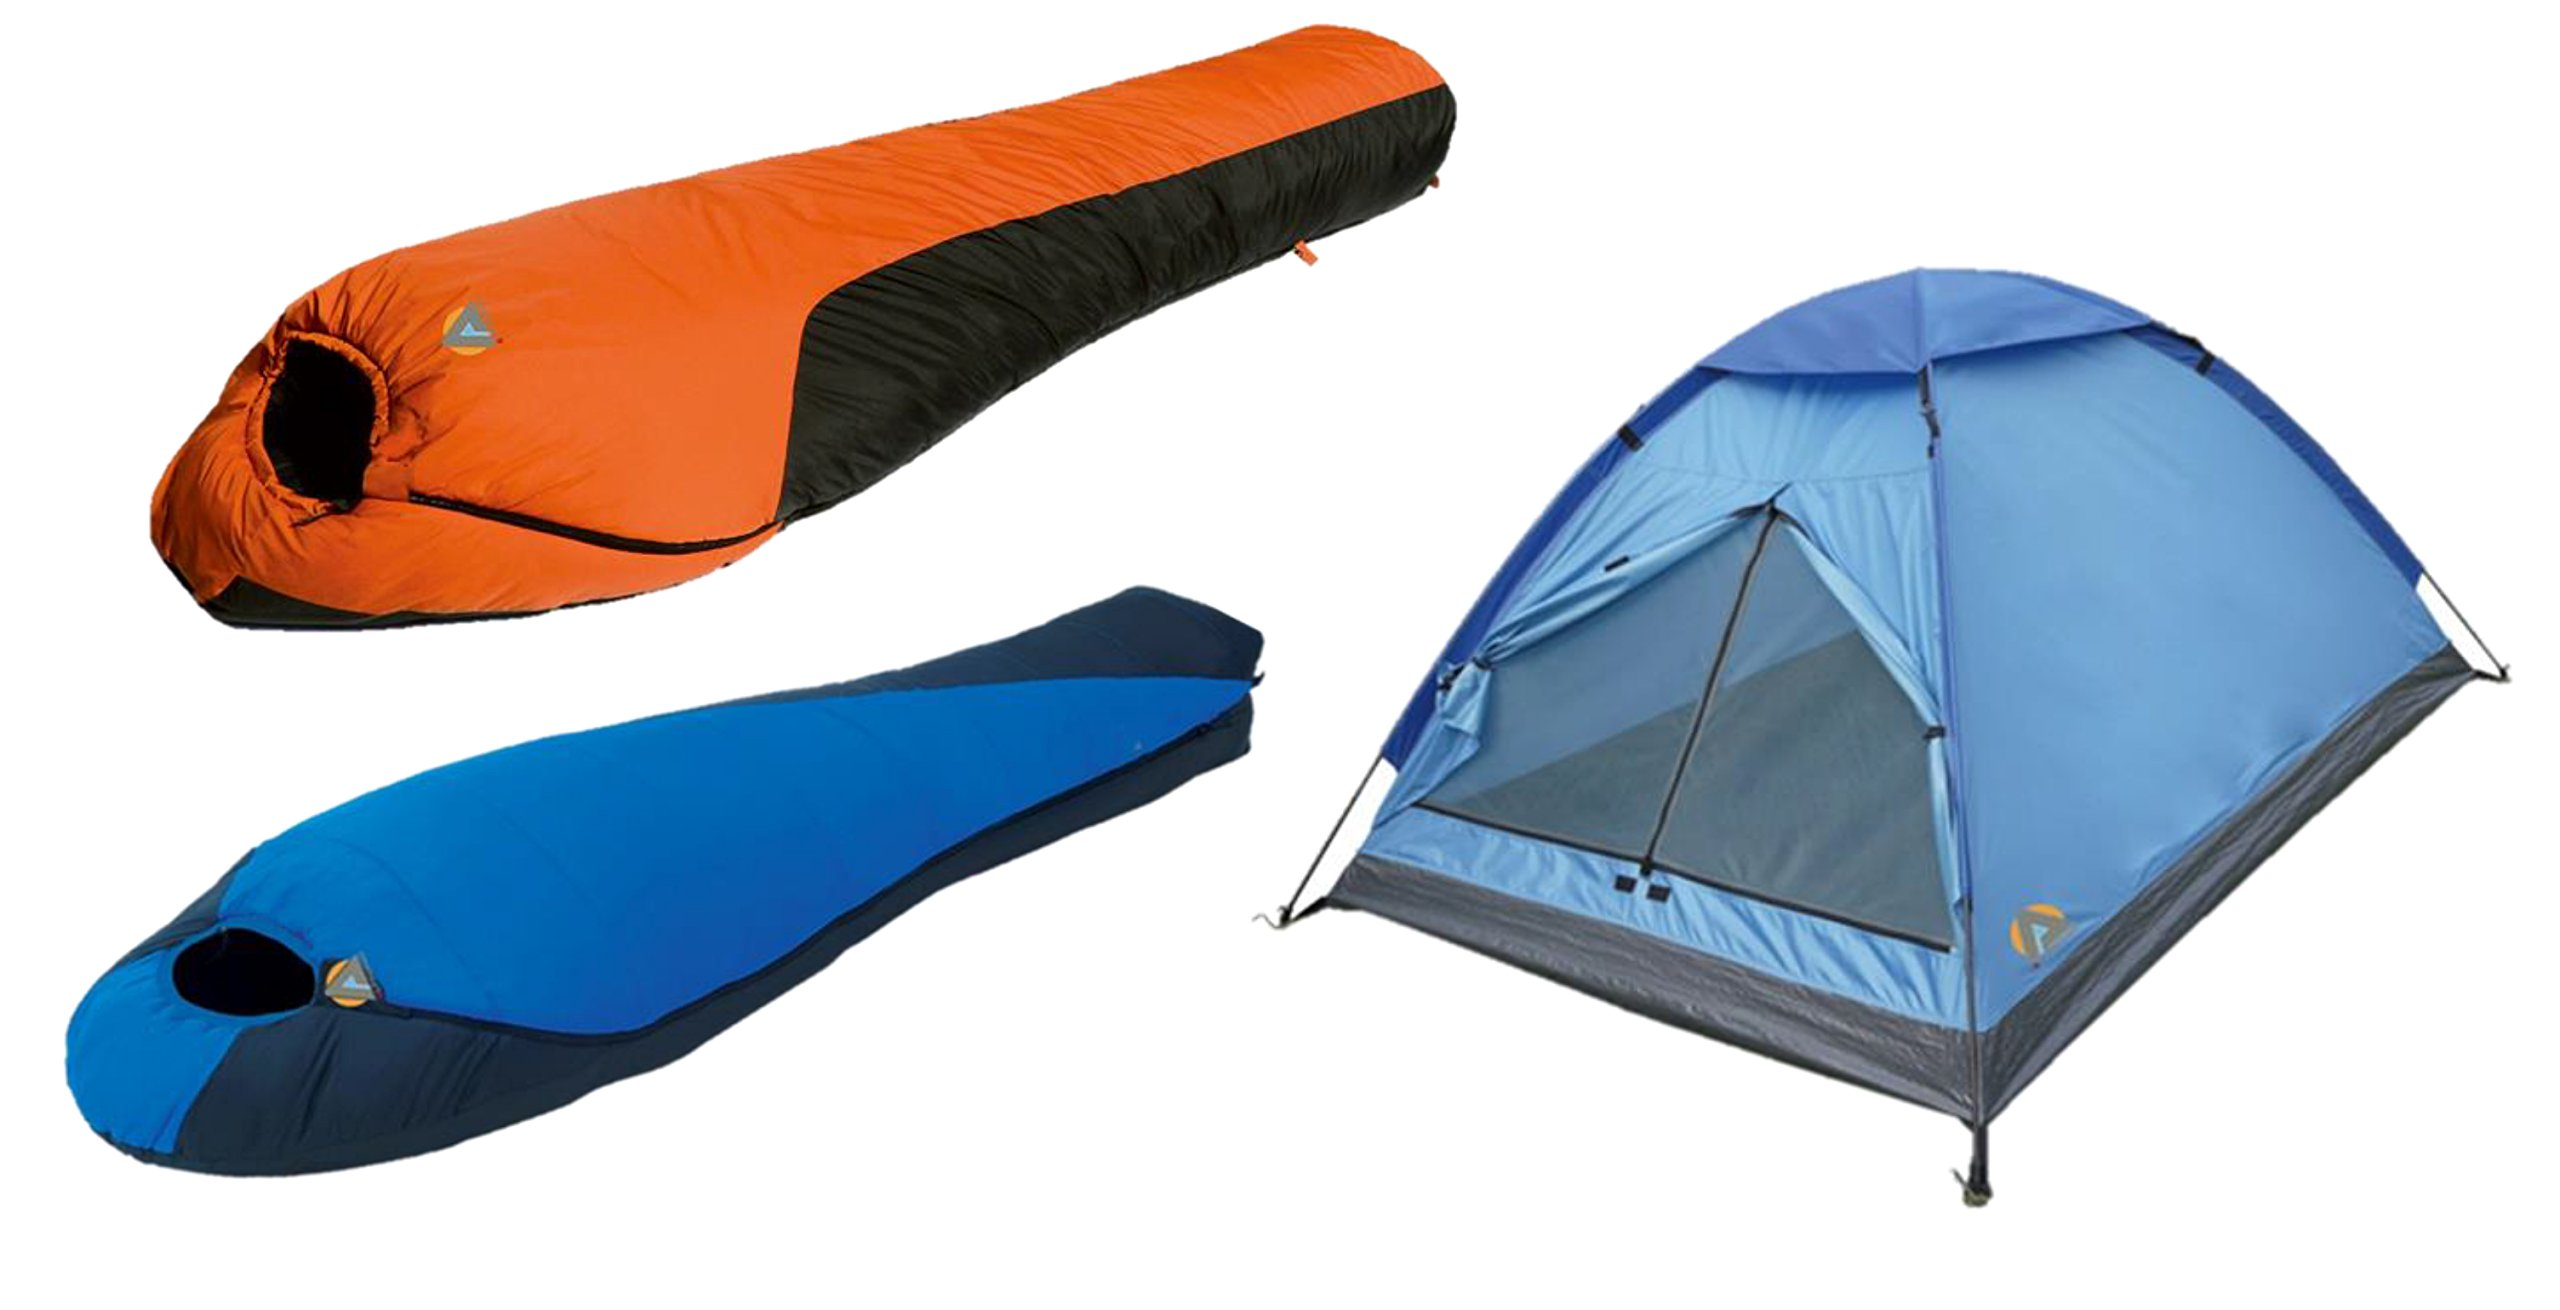 High Peak USA Alpinizmo Extreme Pak 0F & Mt. Rainier sleeping bags 3 men tent combo set, Blue/Orange, One Size by Alpinizmo